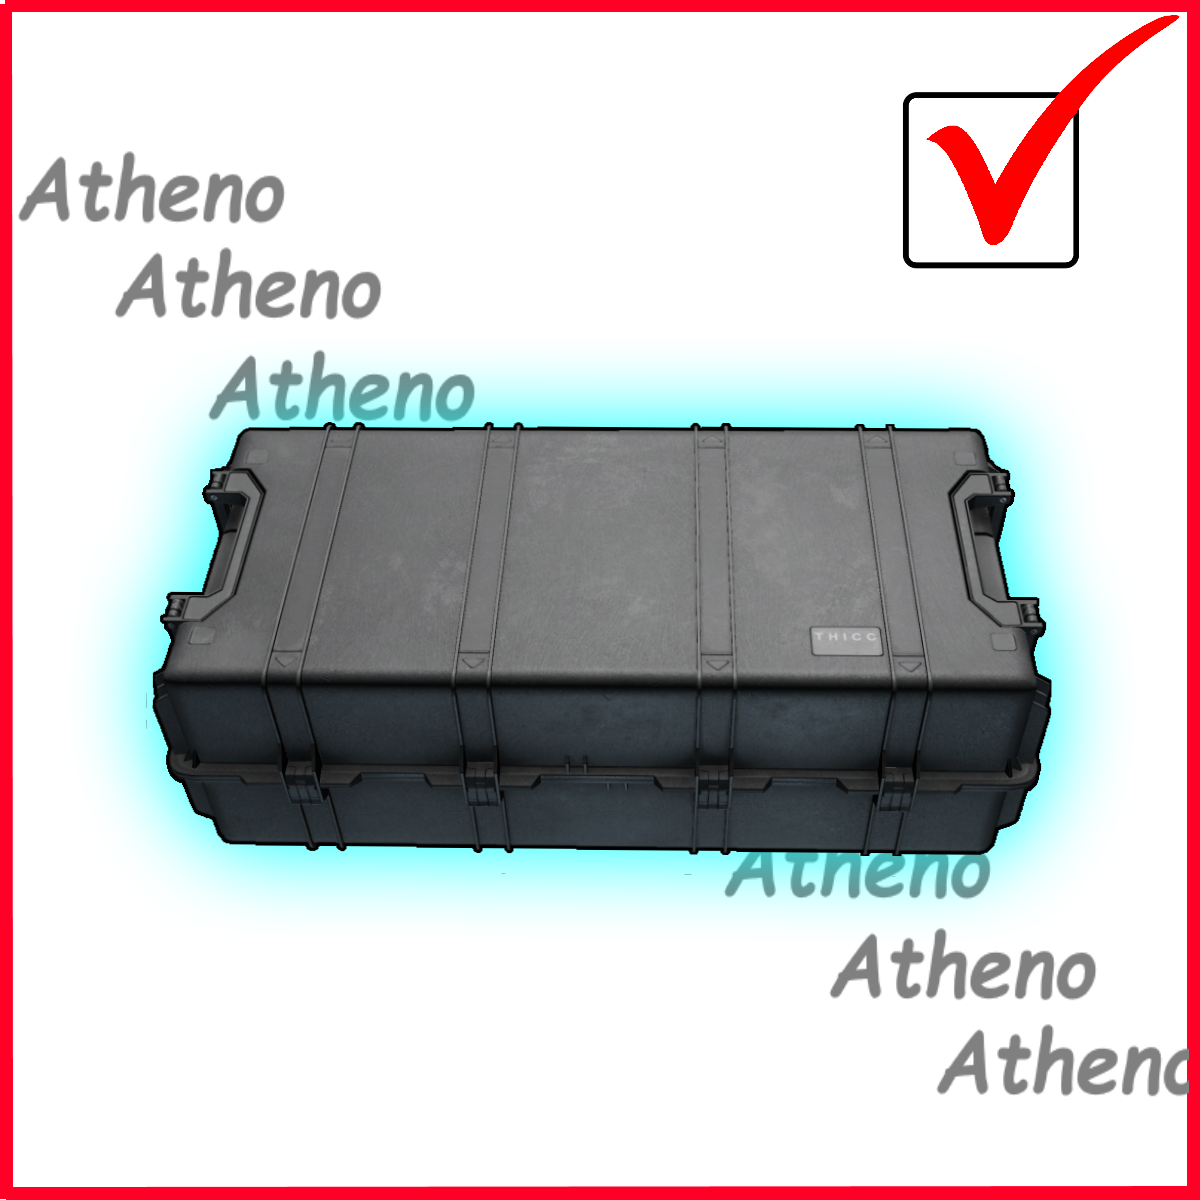 T H I C C Items case THICC 14x14  INSTANT DELIVERY 24/7